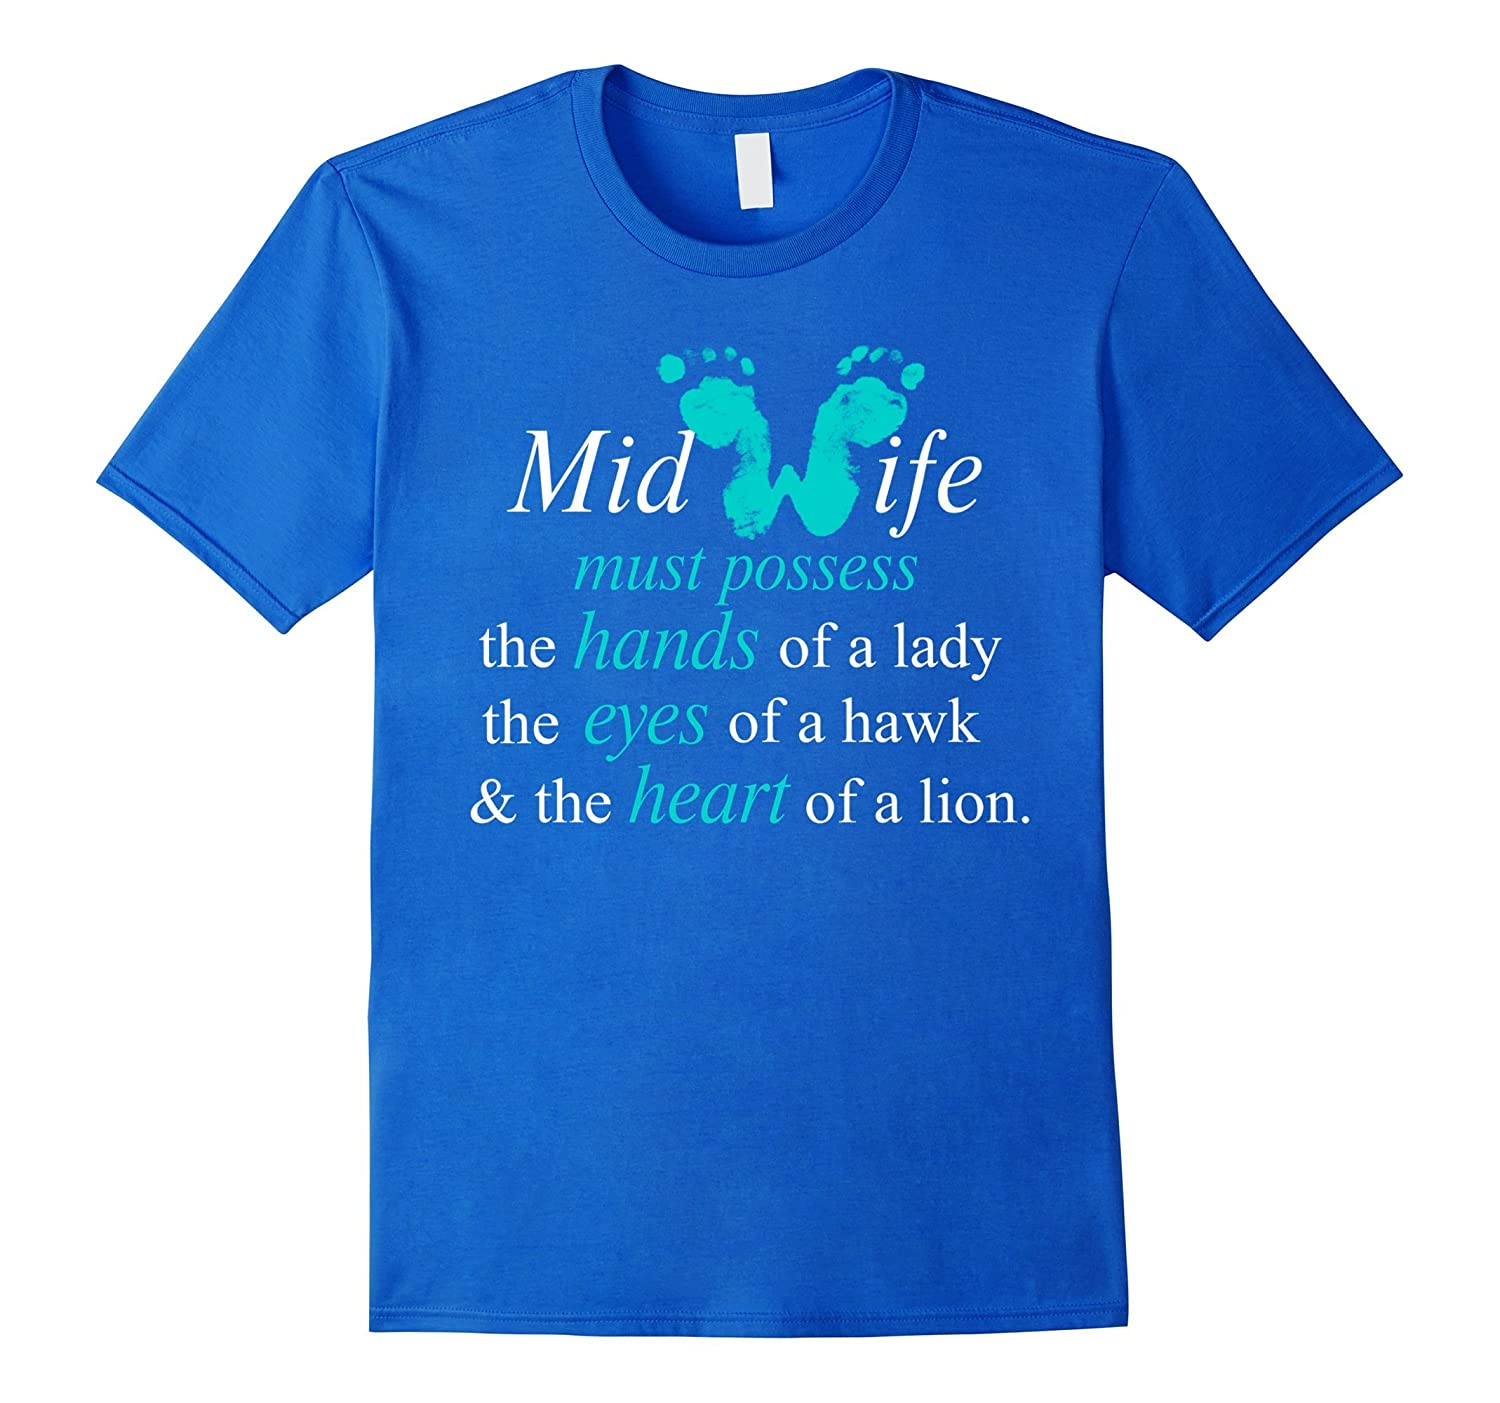 MidWife T-shirt, Midwife funny shirt-Rose